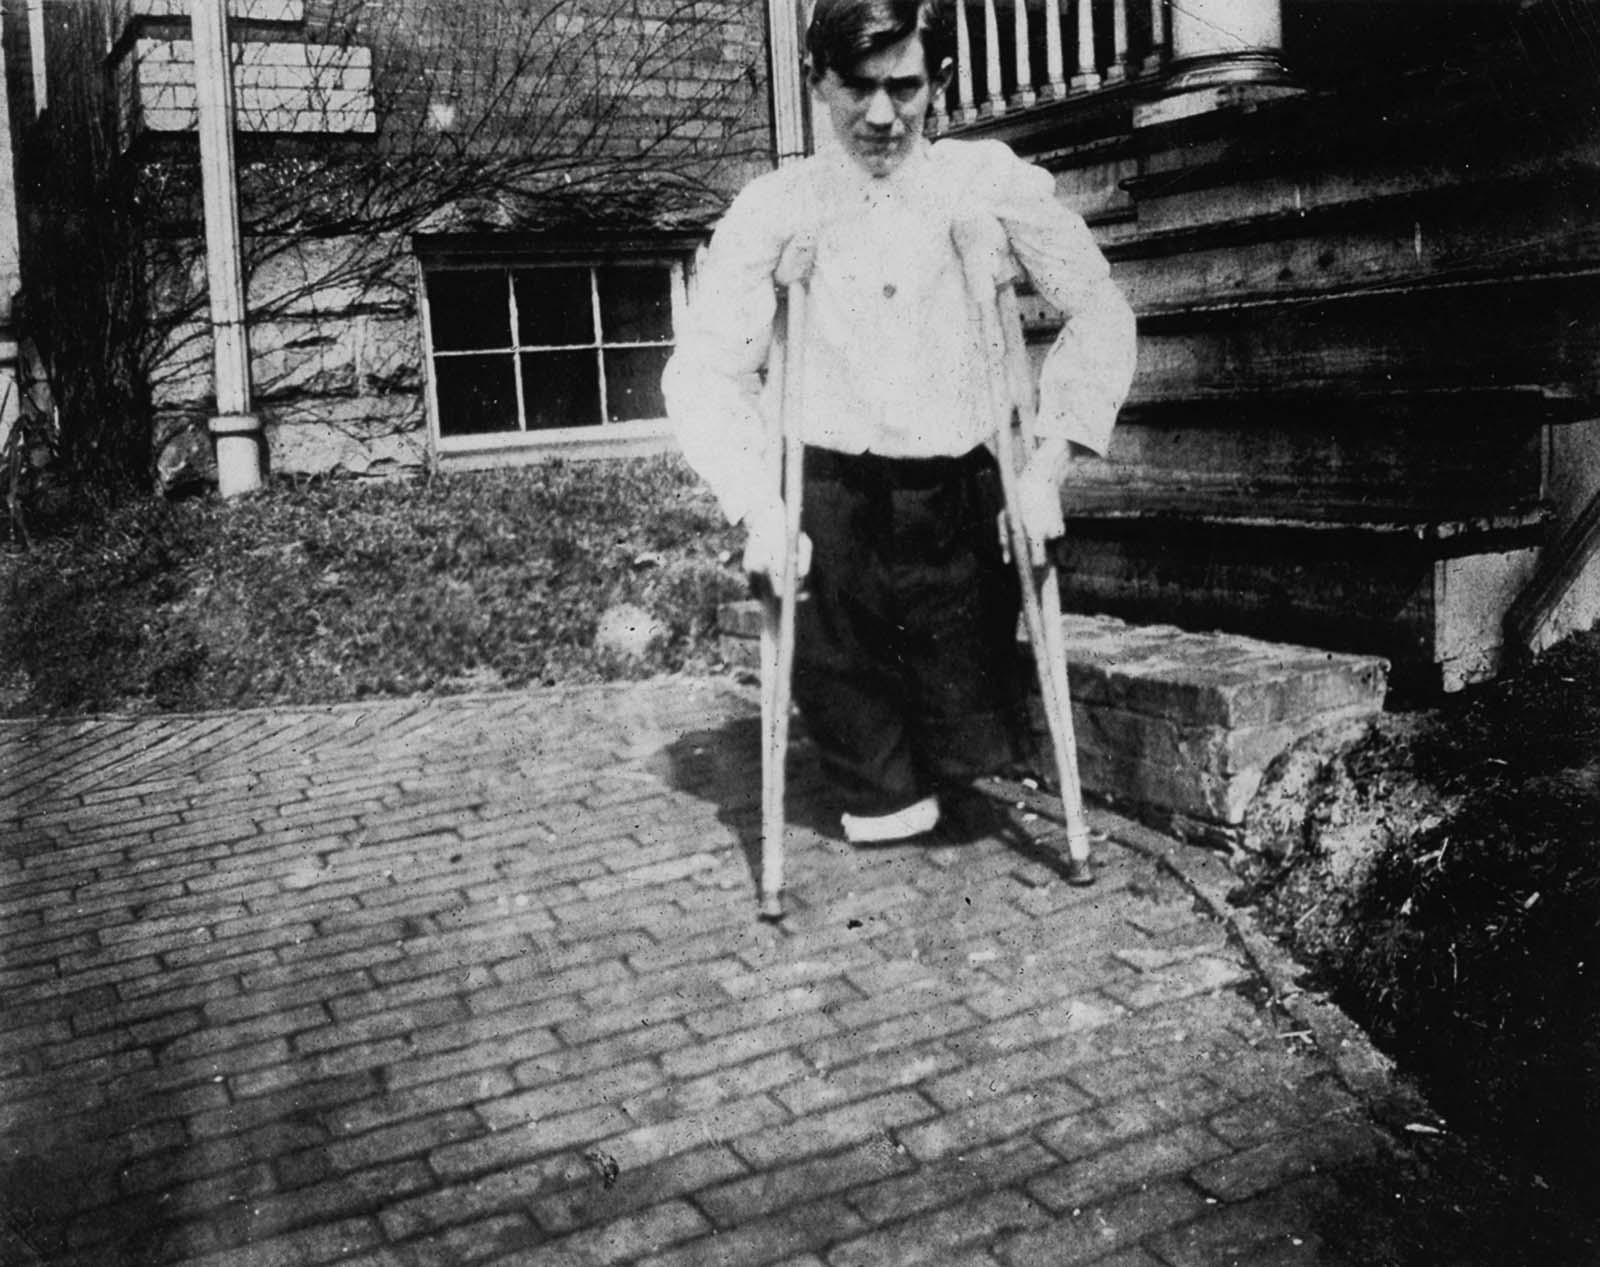 Nola McKinney, whose legs were cut off by a motor car in a coal mine in West Virginia when he was 14 years old. 1910.